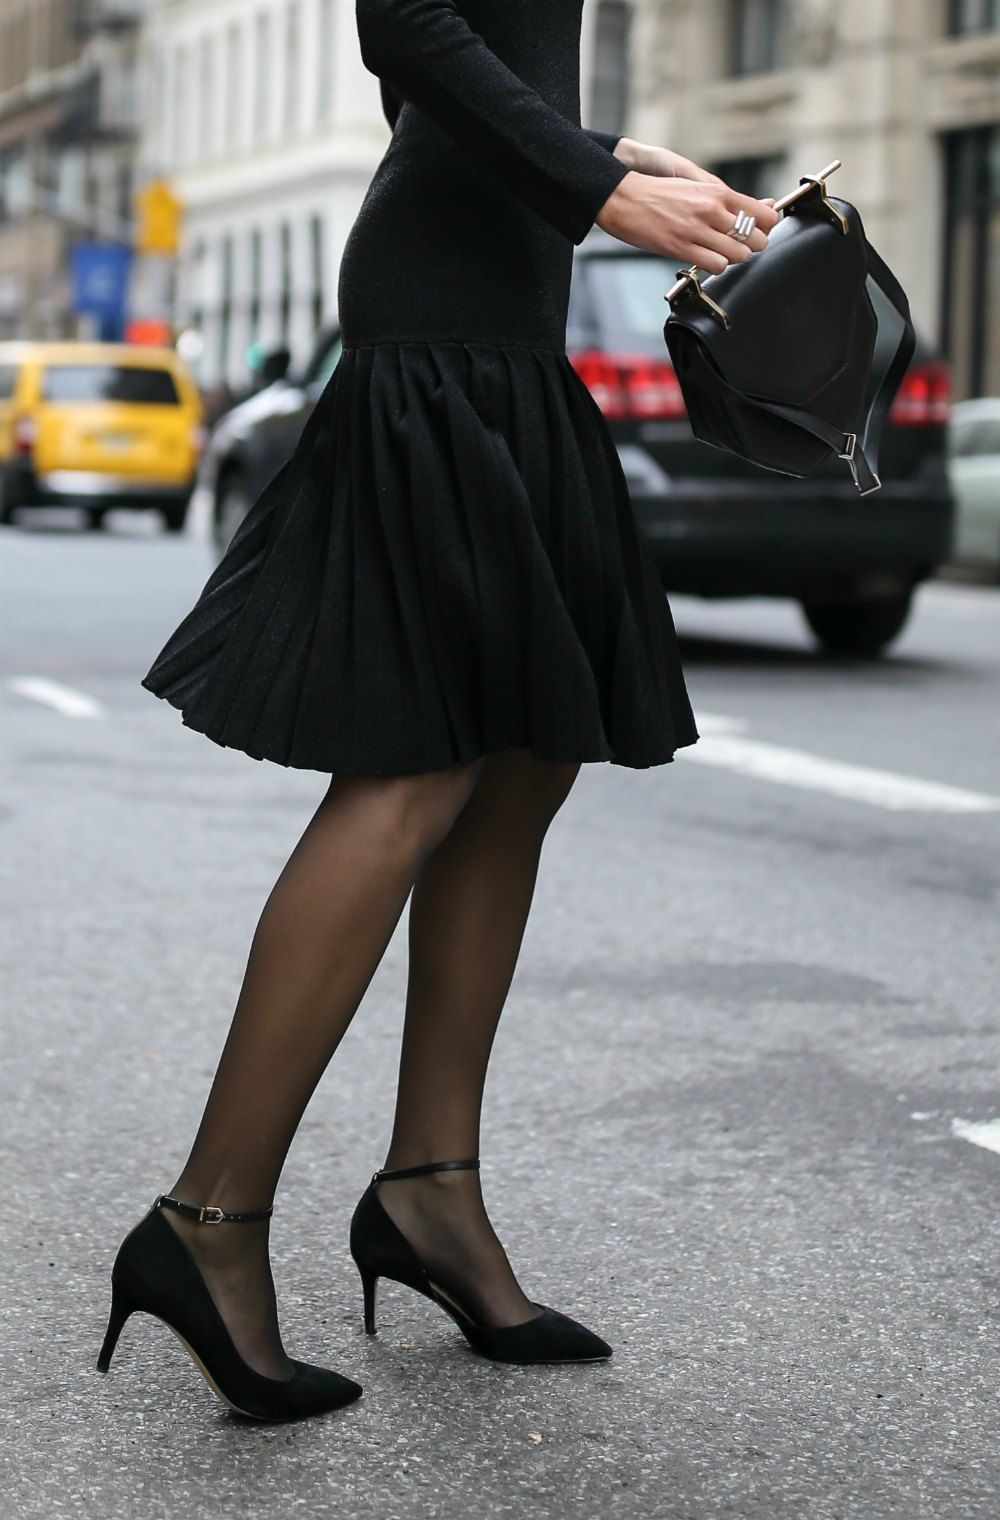 30 Dresses In 30 Days Engagement Party Black Off The Shoulder Pleated Knit Sparkle Dress Black Suede Ankle Strap Fashion Black Tights Best Party Dresses [ 1520 x 1000 Pixel ]